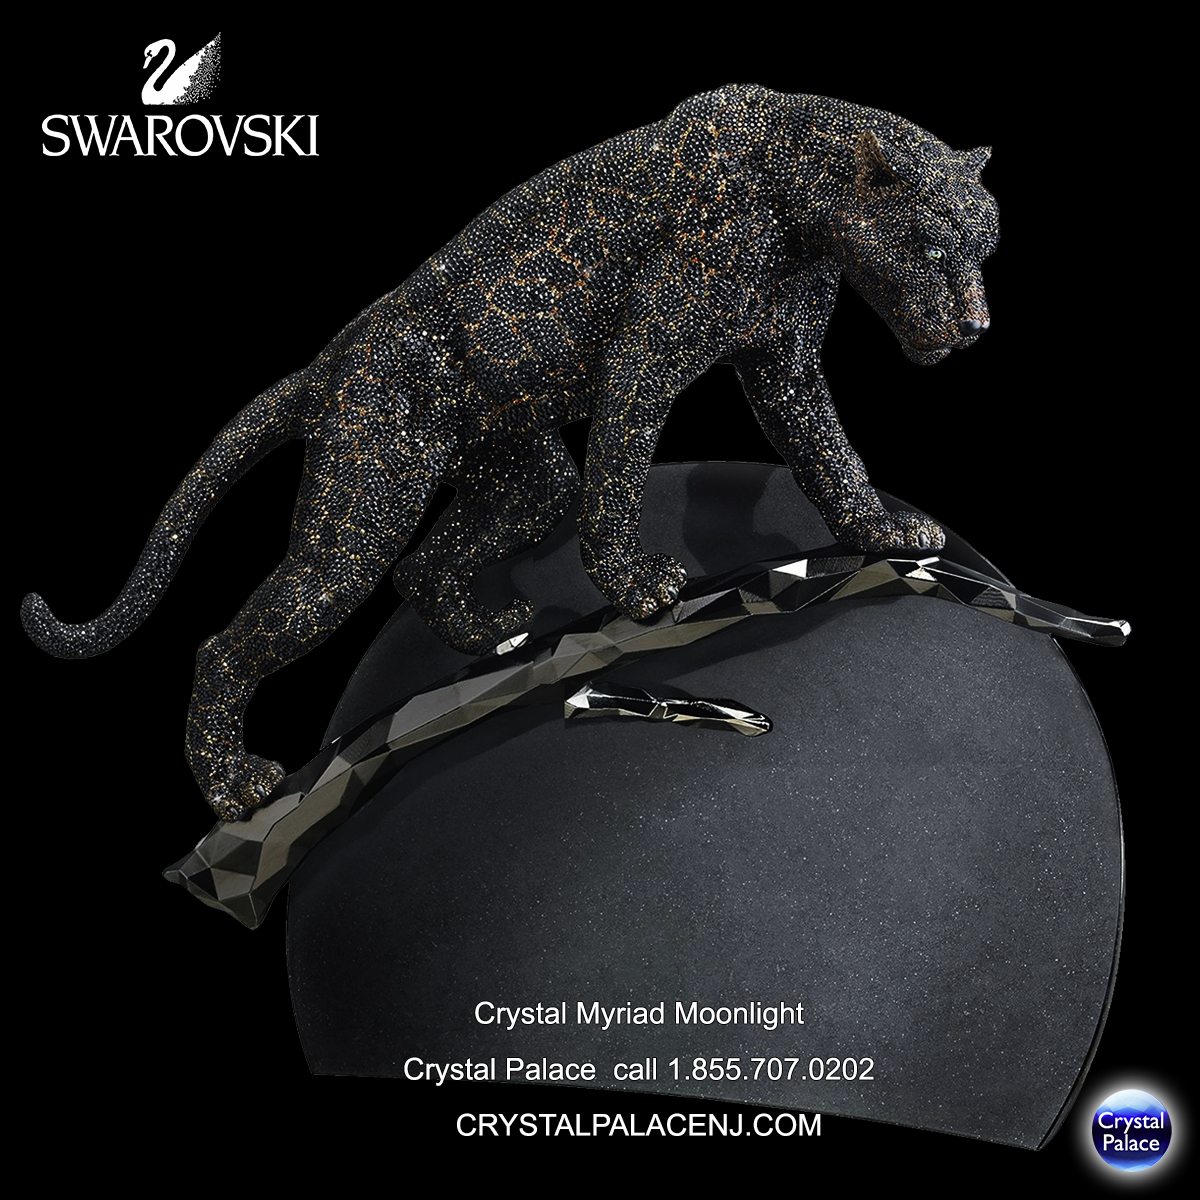 Swarovski Crystal Myriad Moonlight The Black Jaguar 2014